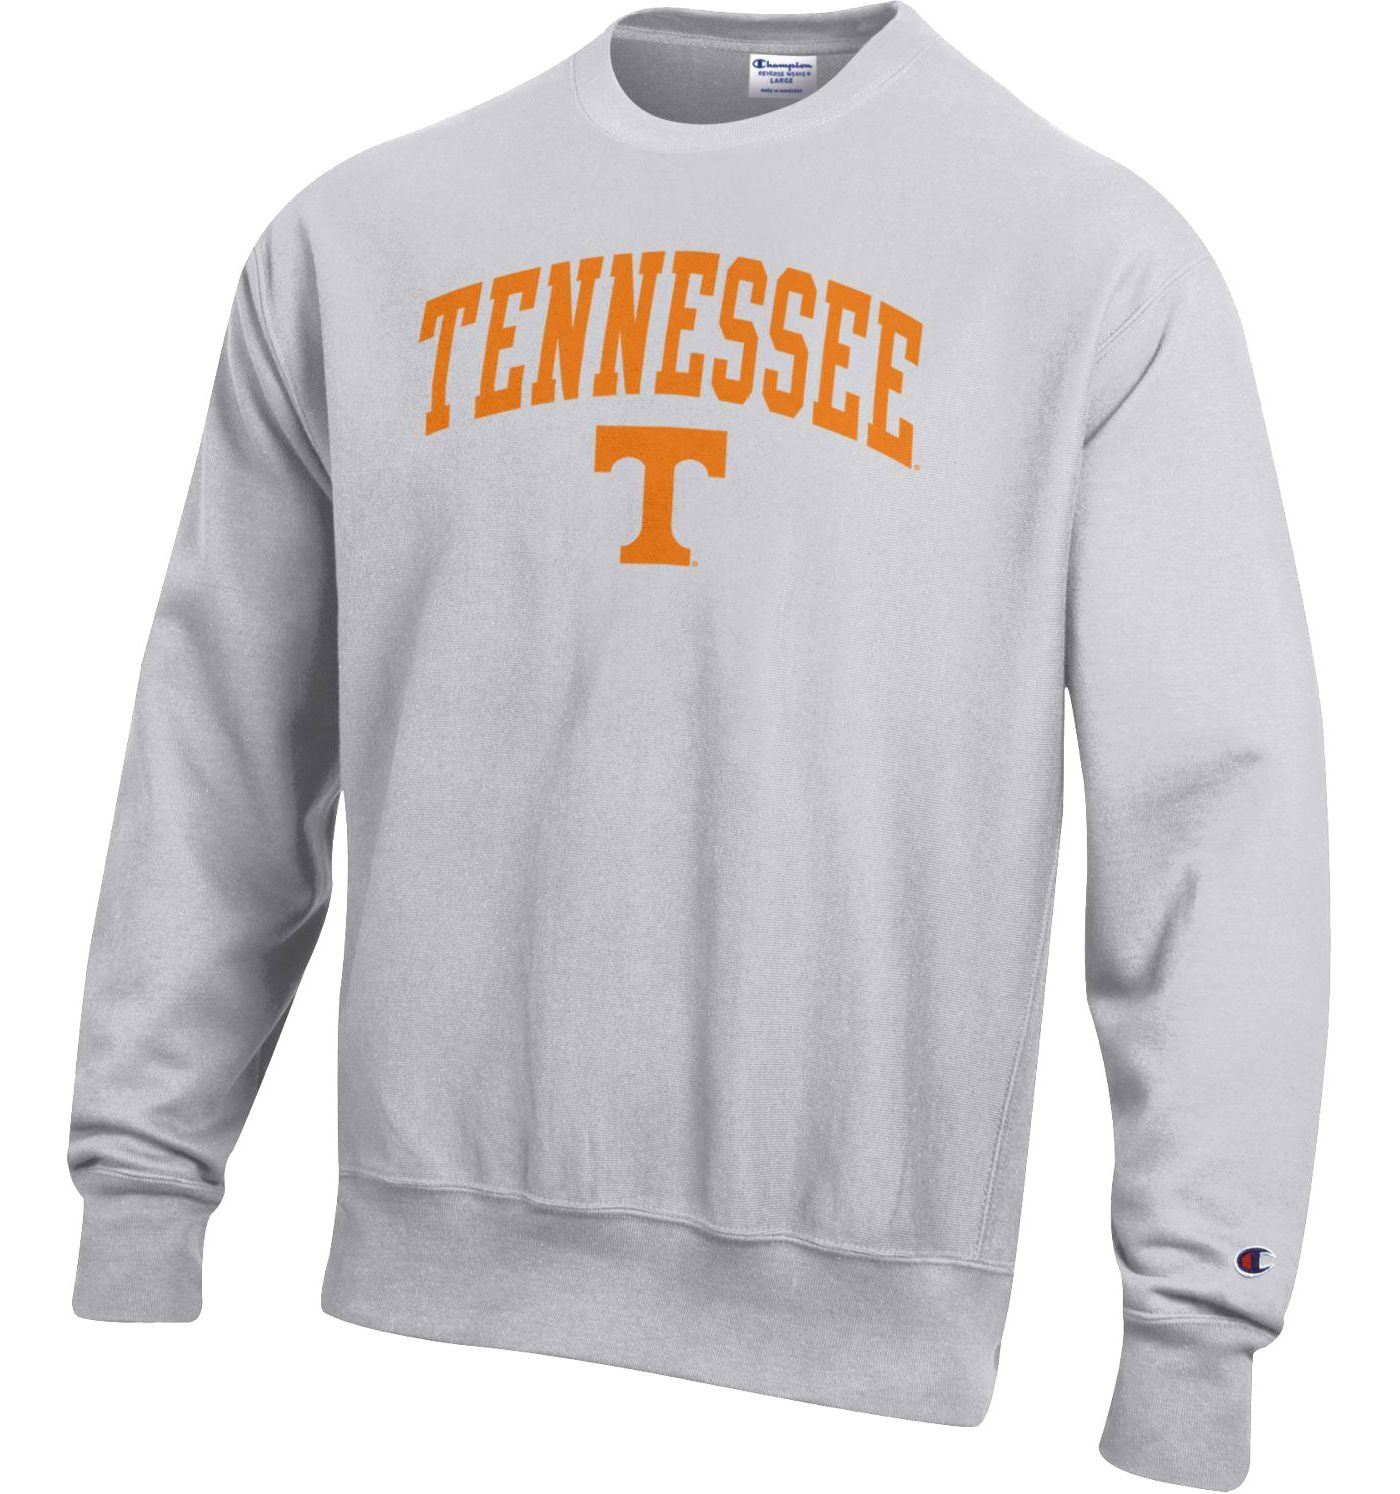 Champion Men's Tennessee Volunteers Grey Reverse Weave Crew Sweatshirt